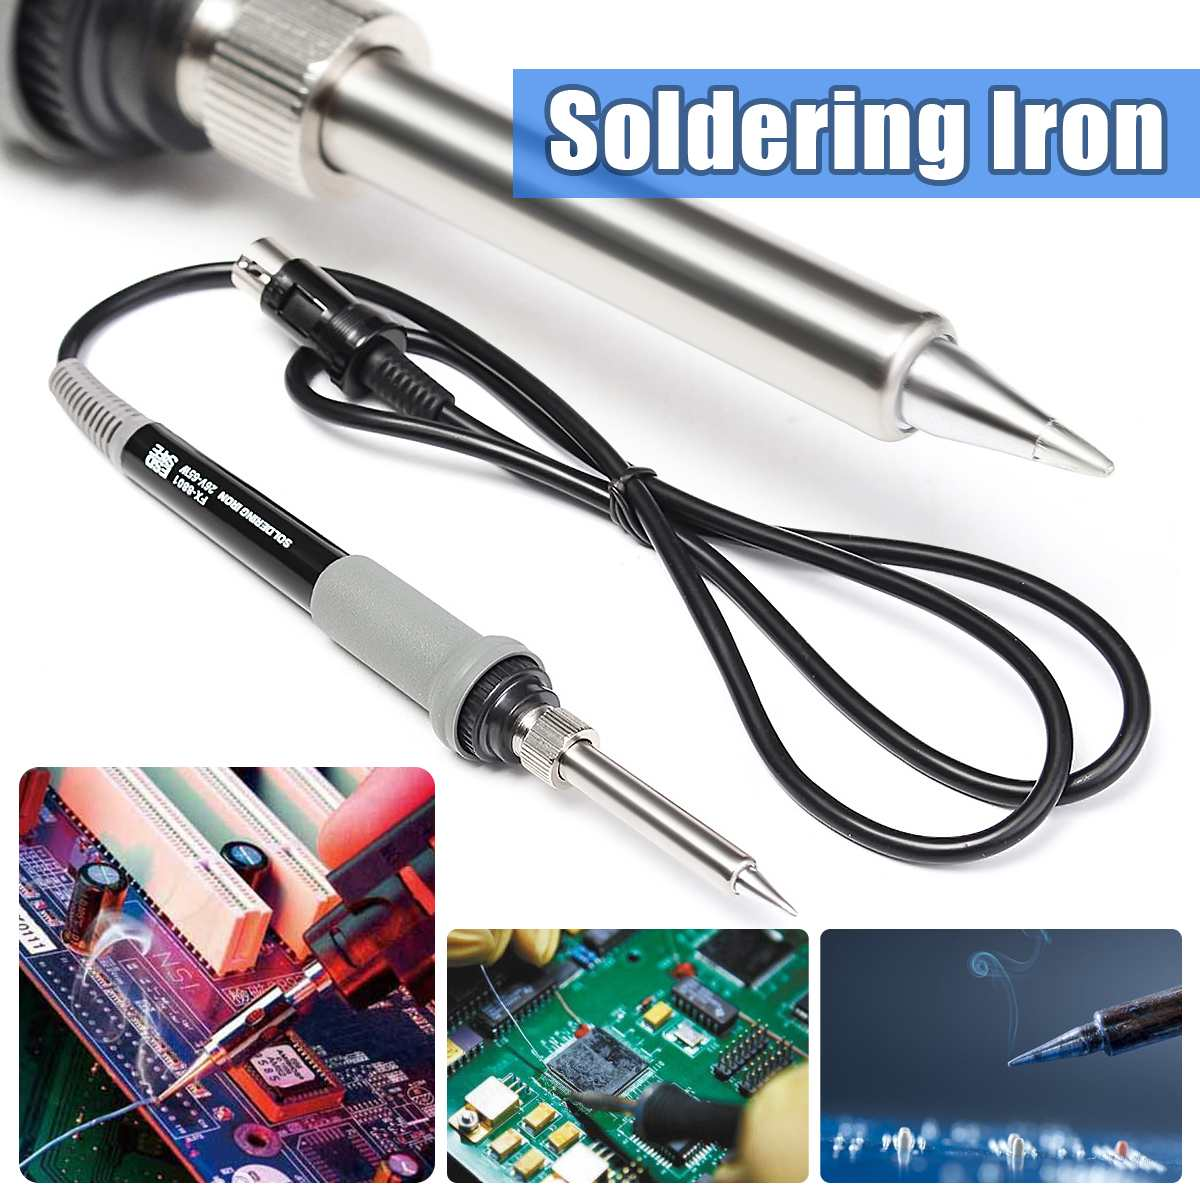 1PC Soldering Iron Handle Station 6Pin For  FX-888 FX-888D FX-8801 Soldering  Working